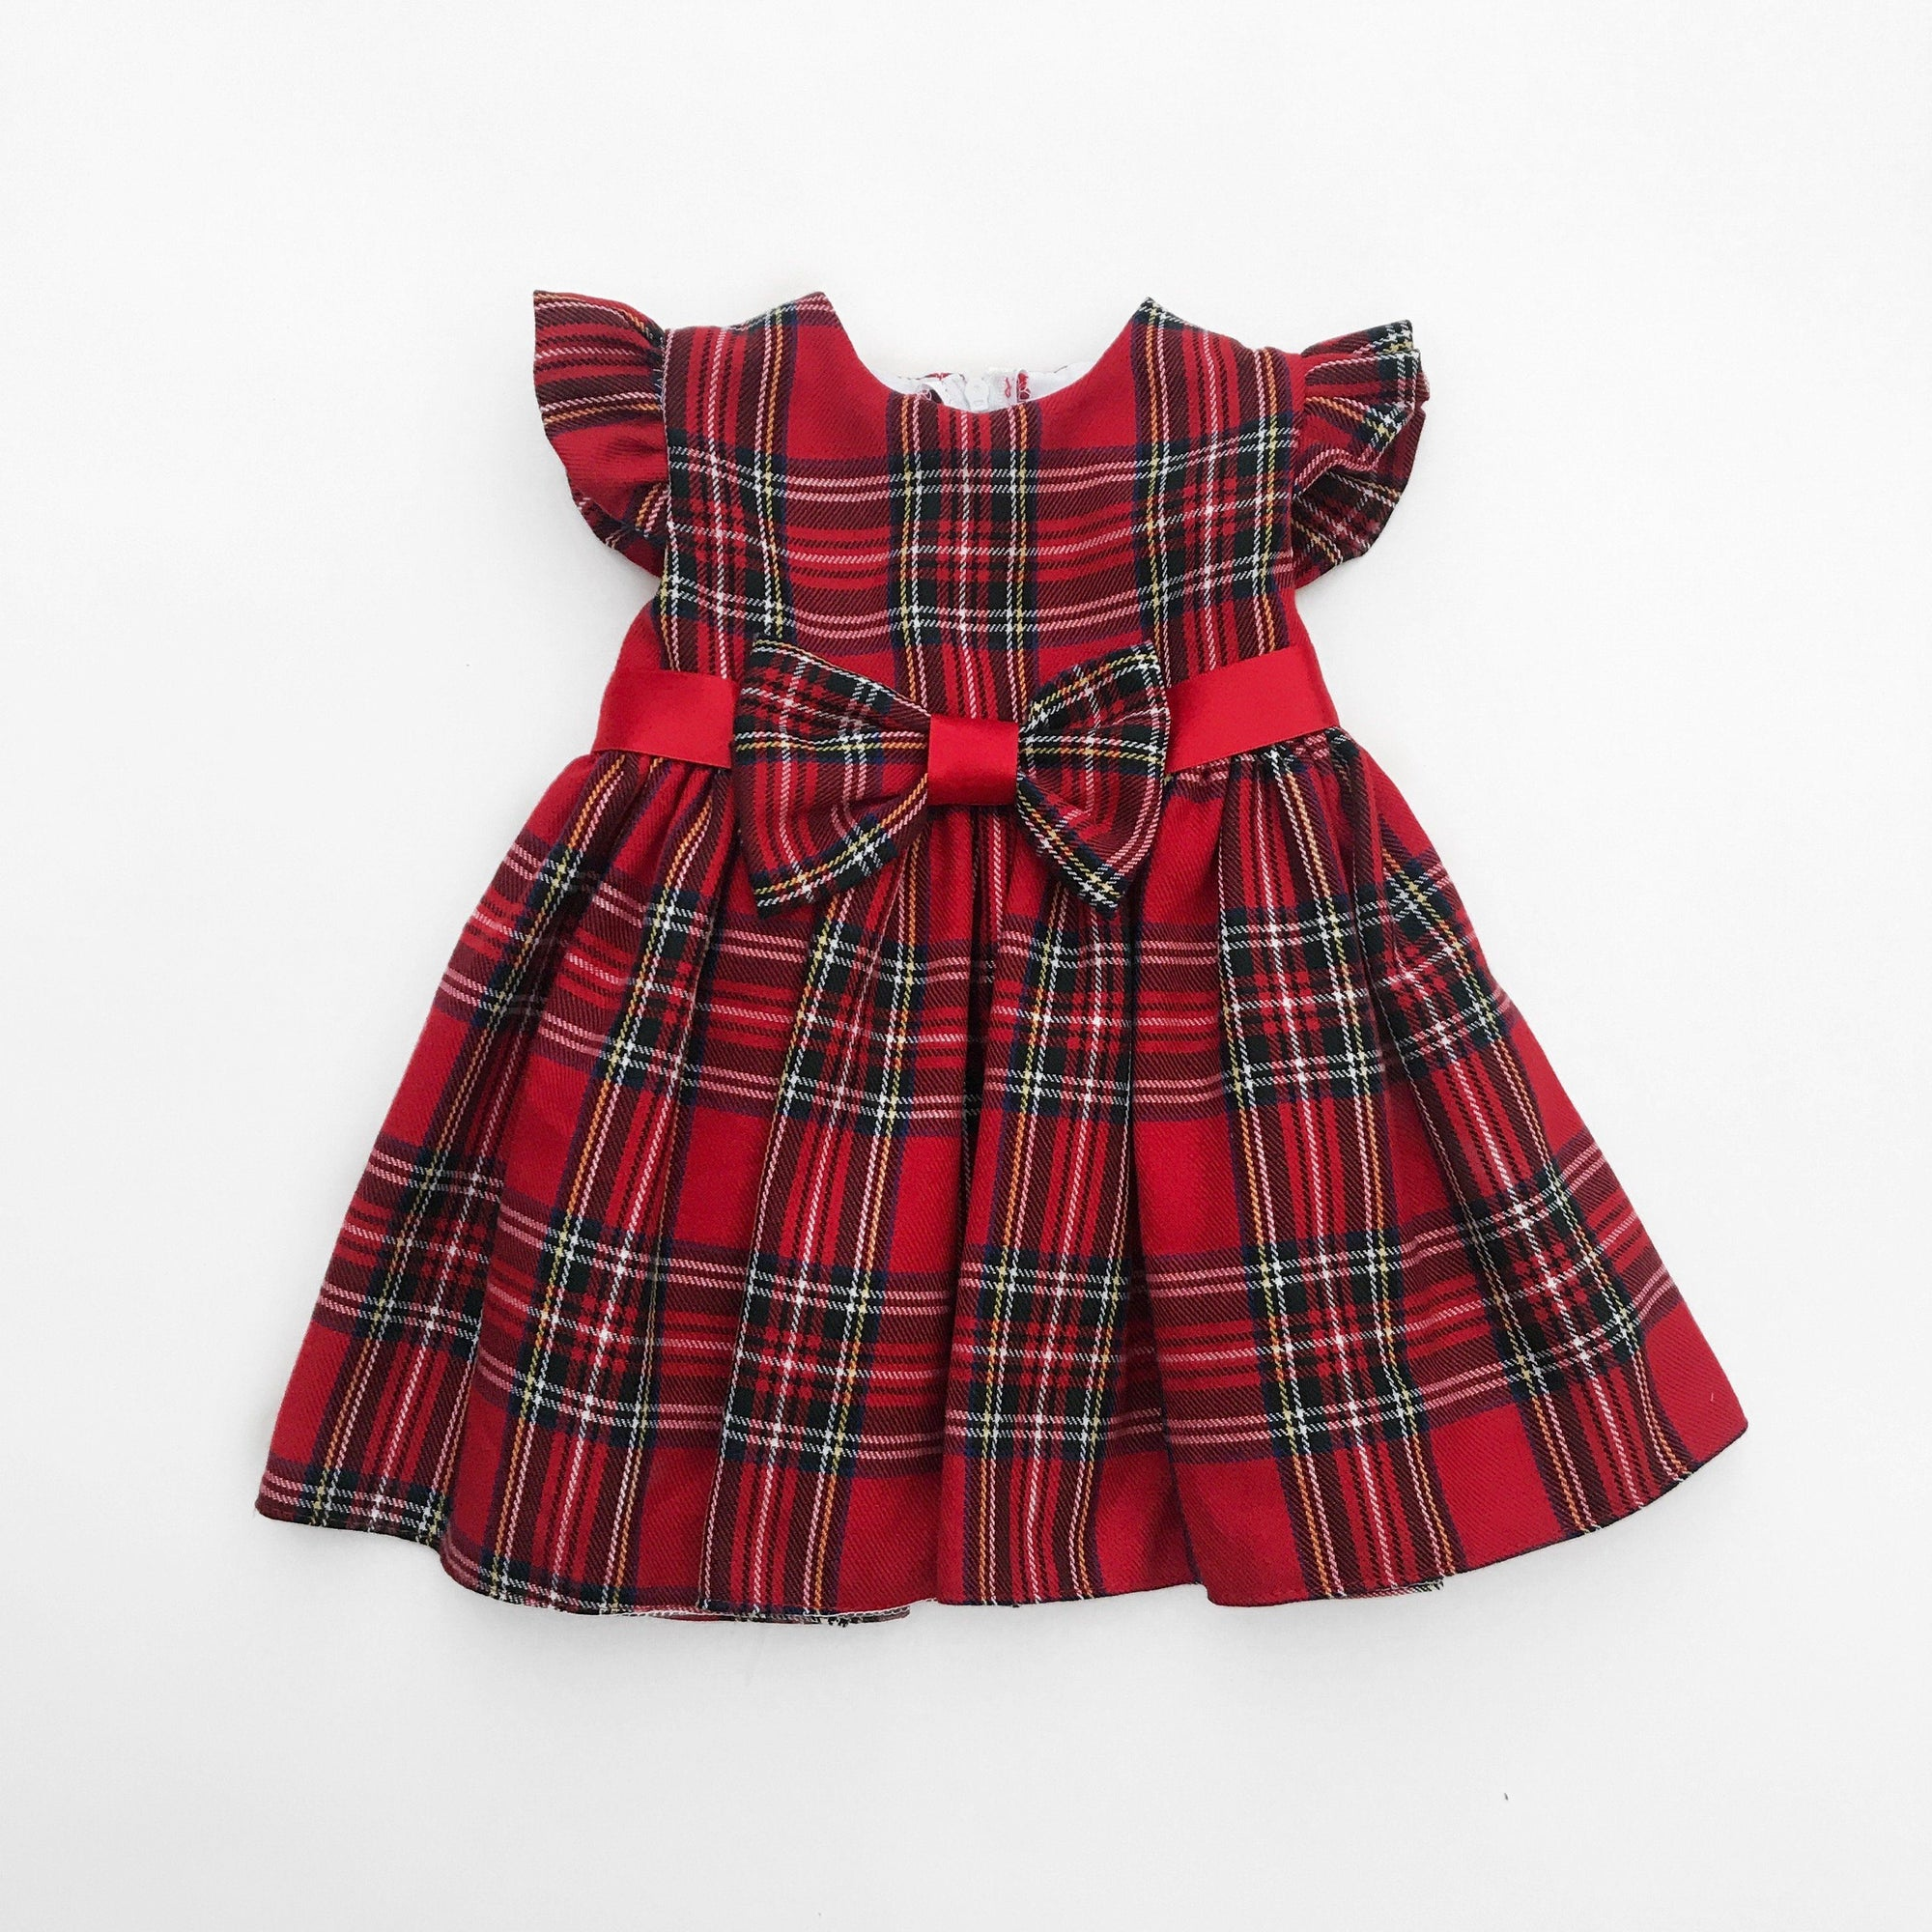 Kinder Red Tartan Bow Dress | Millie and John